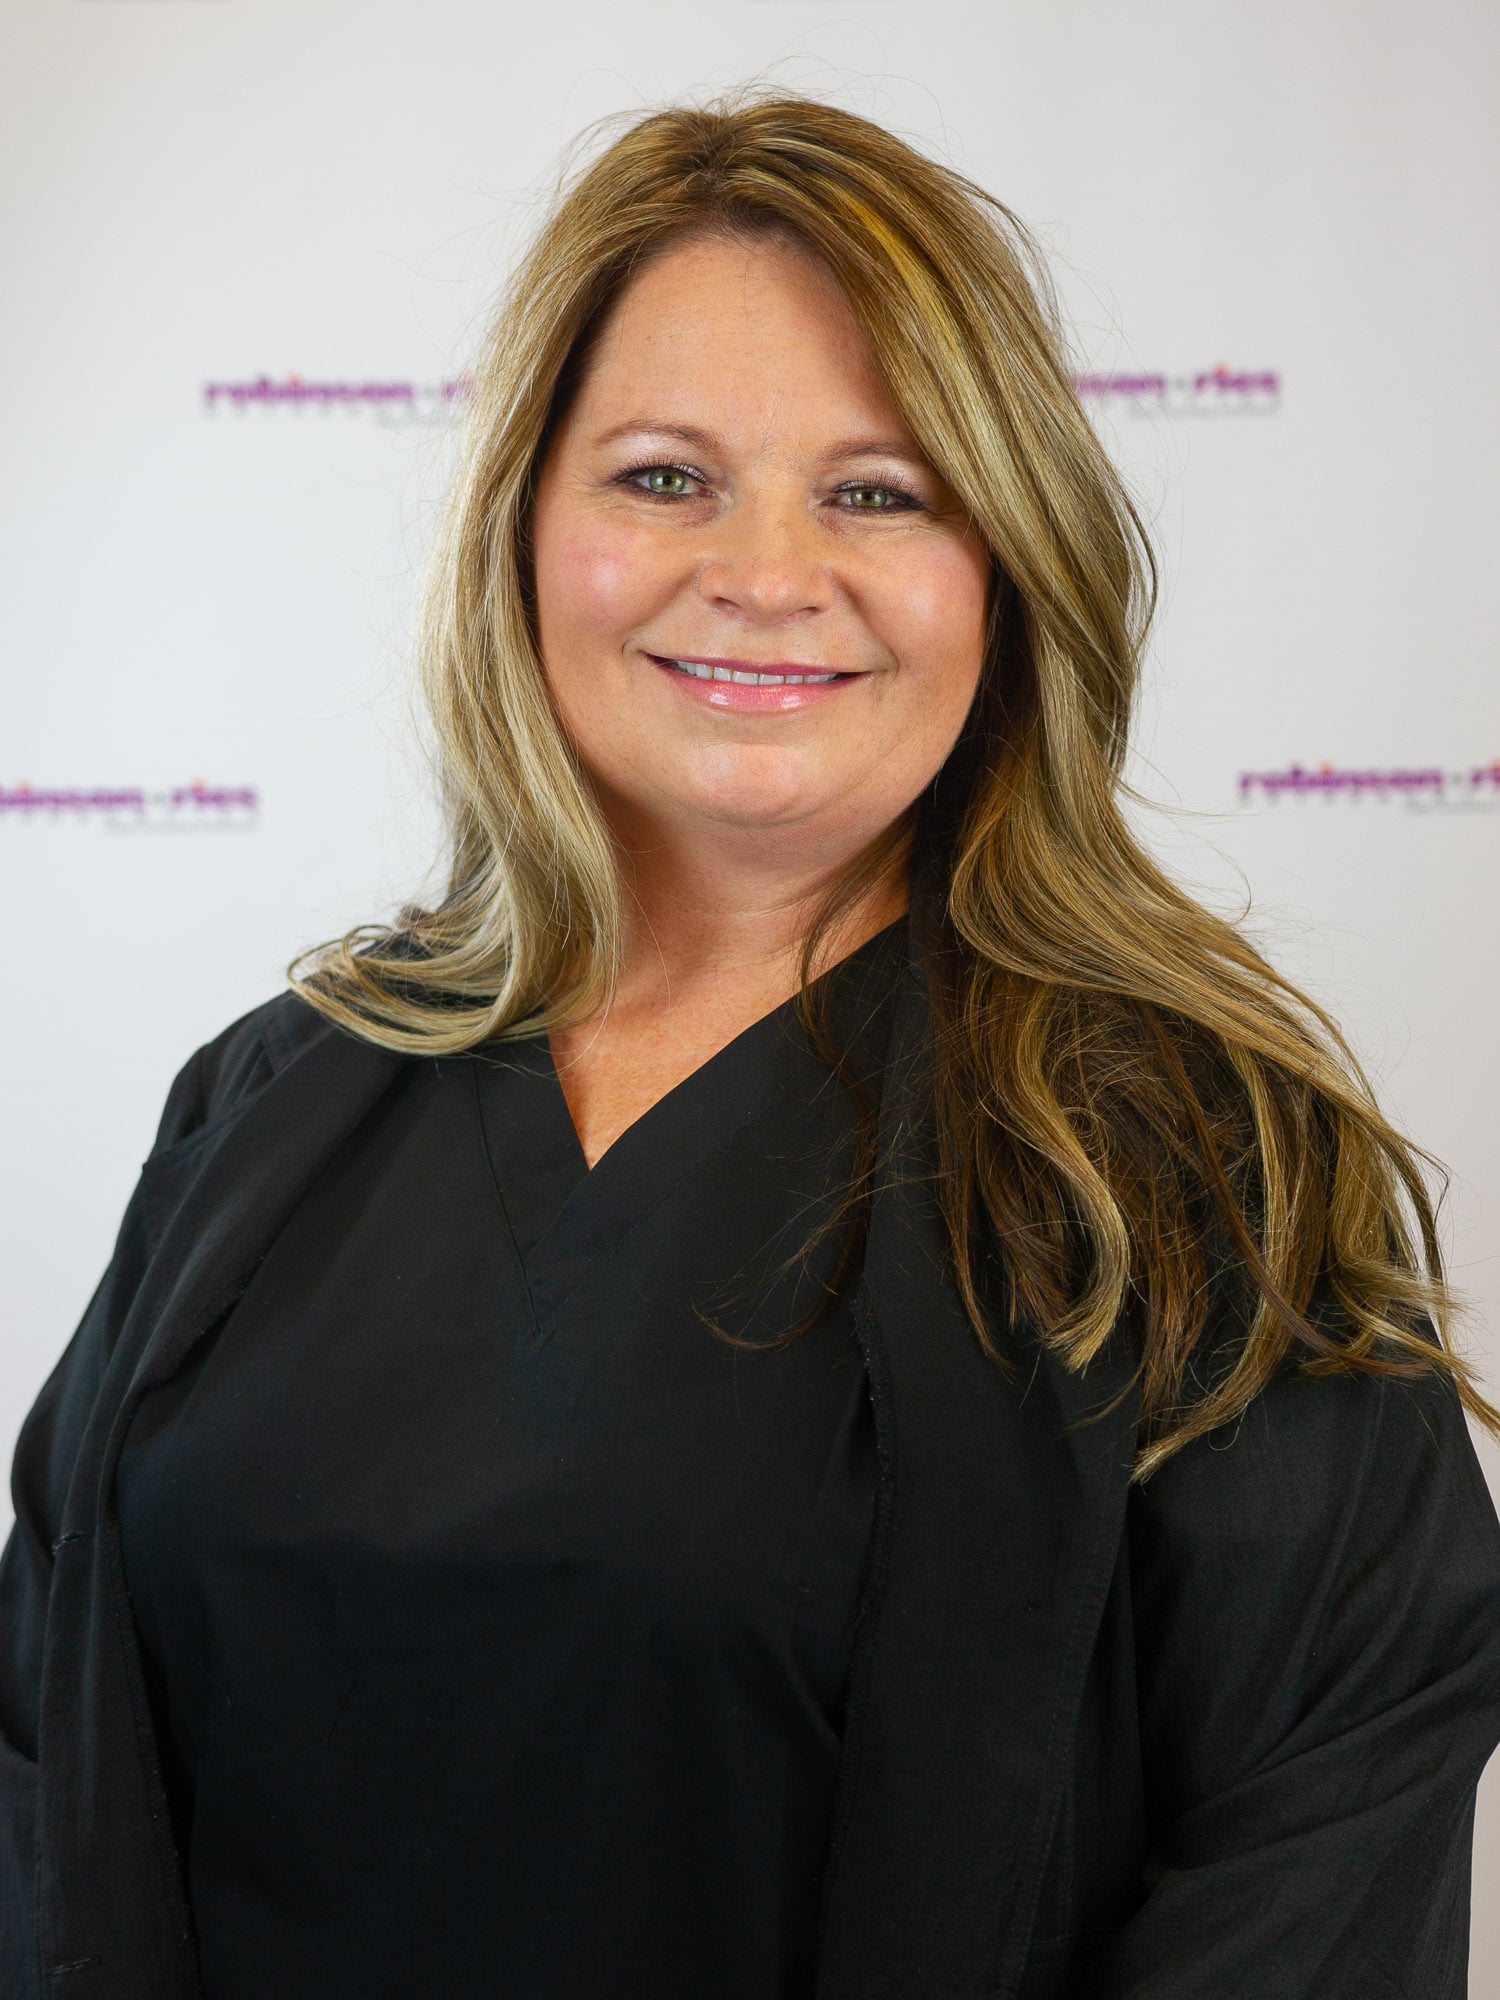 Marci is an Orthodontic Assistant at Robinson + Ries.